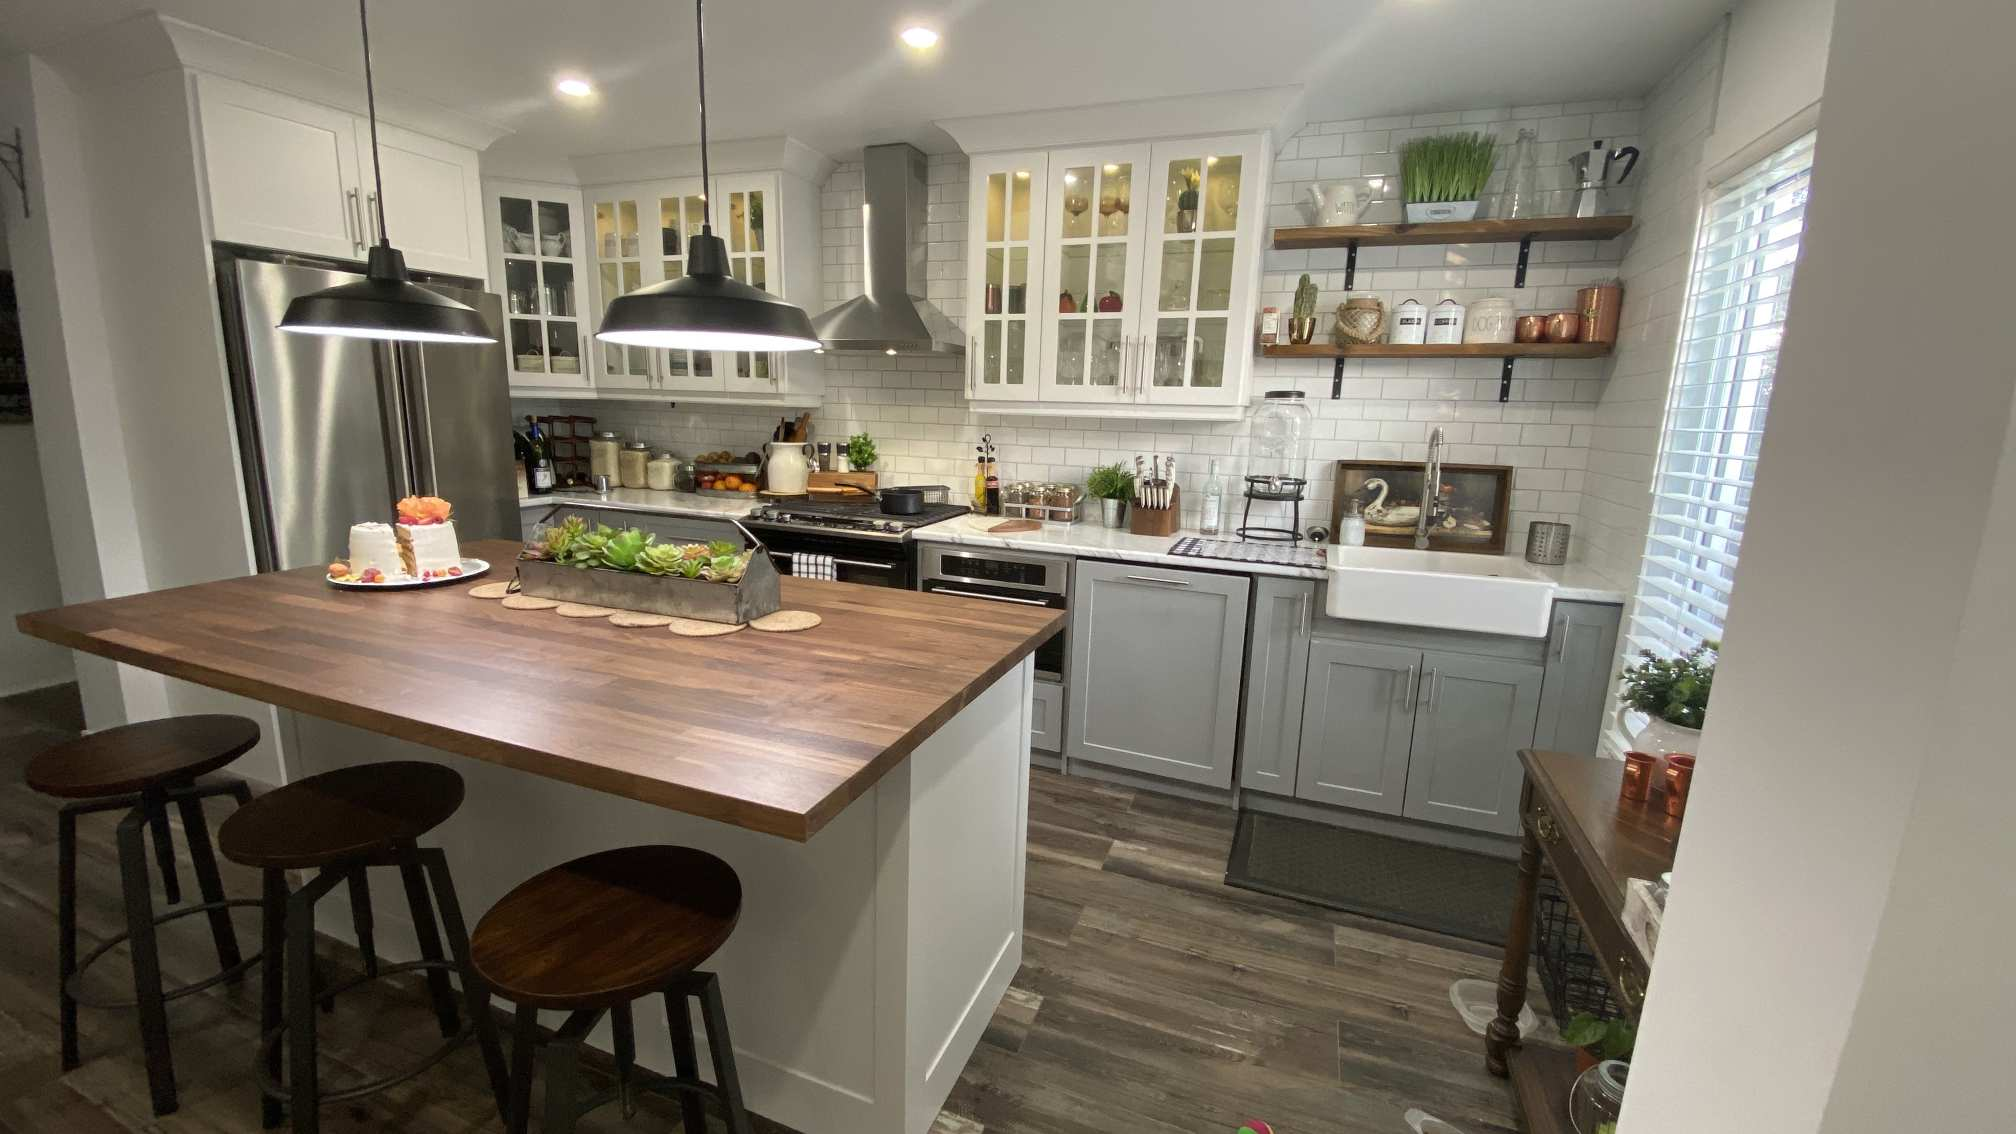 tips to transform your kitchen blog featured image on TK kitchen and vanity london ontario